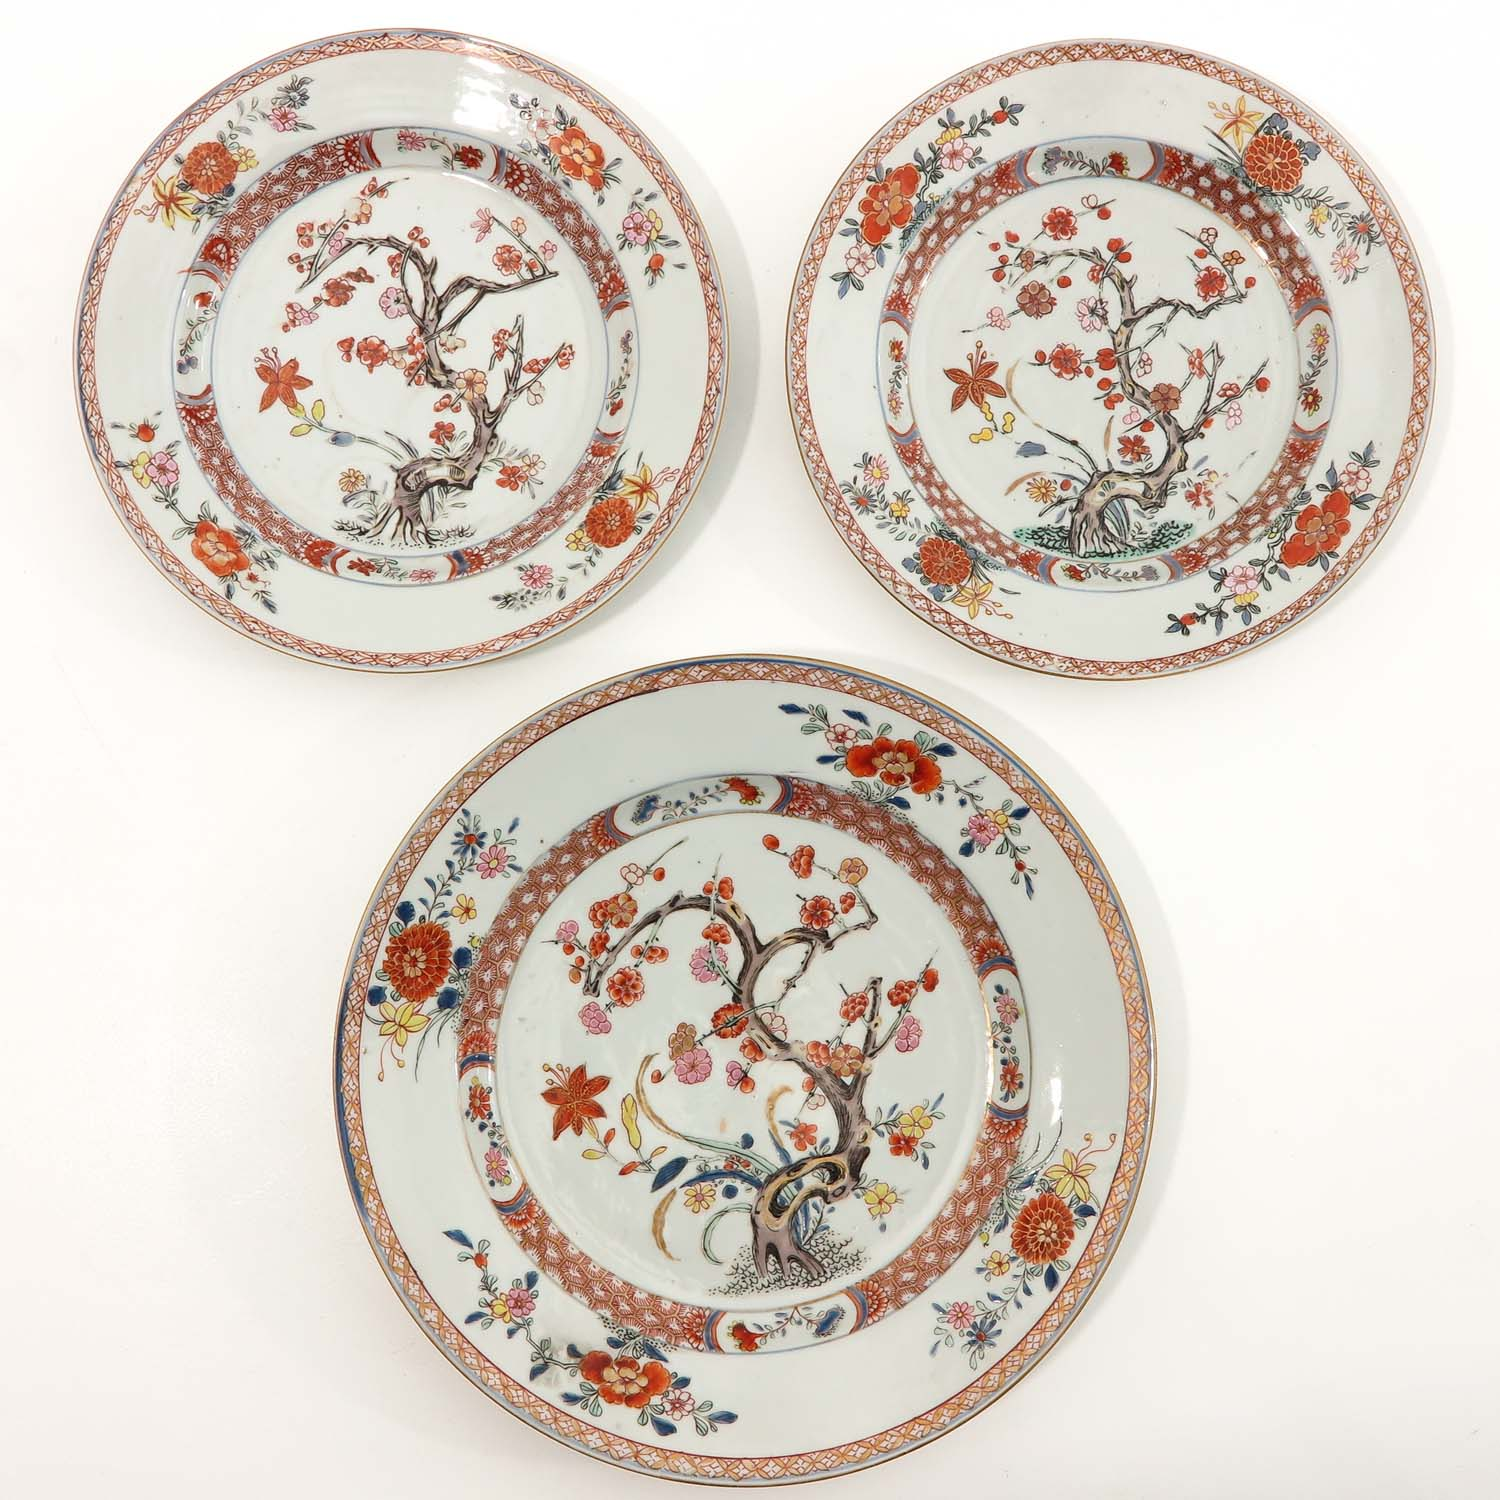 A Collection of 6 Polychrome Decor Plates - Image 3 of 9